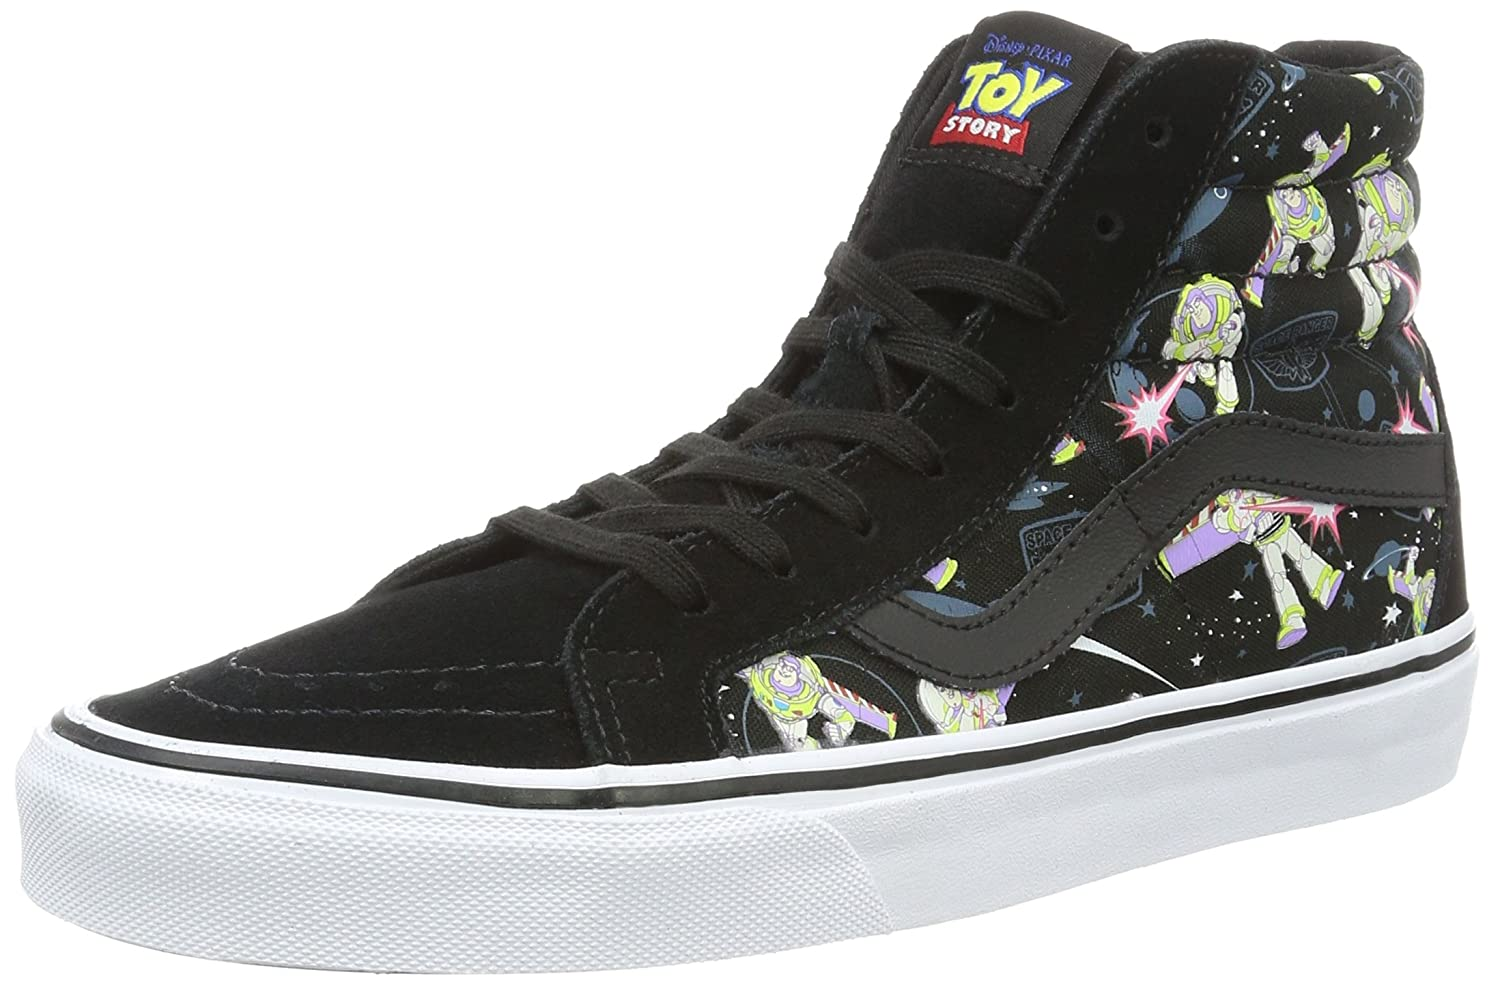 VANS MENS SK8 HI REISSUE LEATHER SHOES B01DYW0D5C 5 D(M) US|(Toy Story) Buzz Lightyear/True White